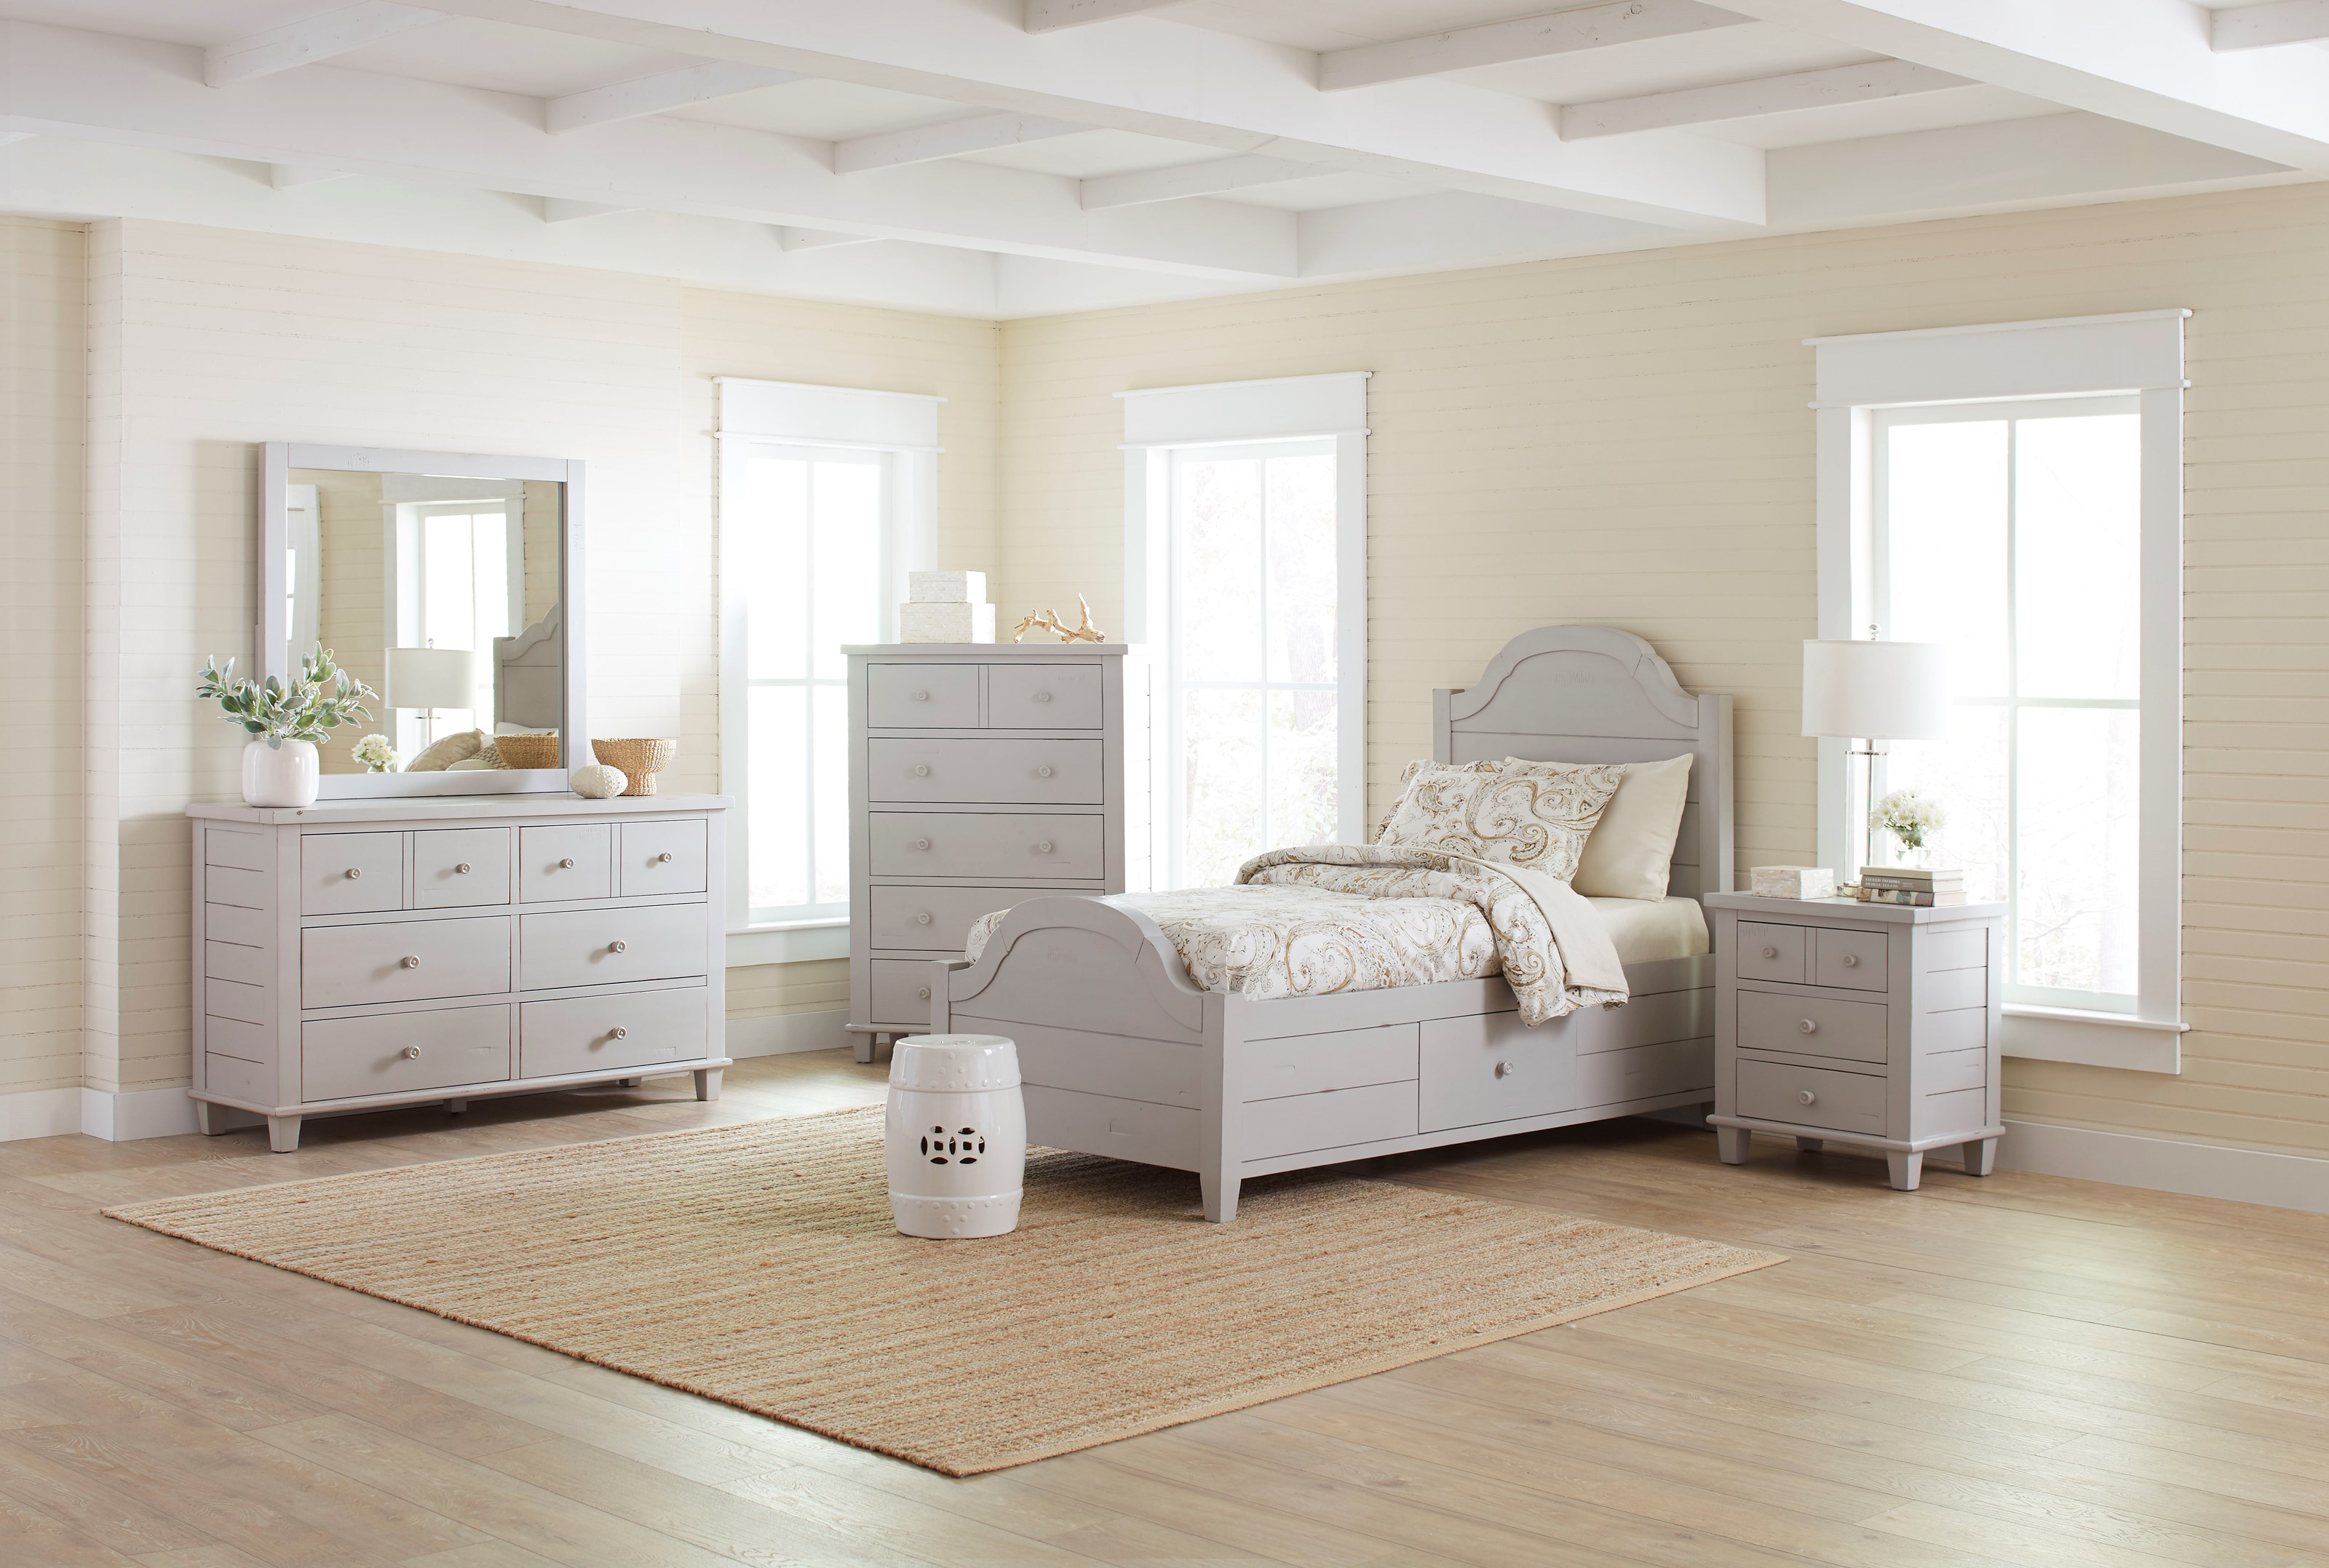 Jofran Chesapeake Twin Size Bed Value City Furniture Panel Beds